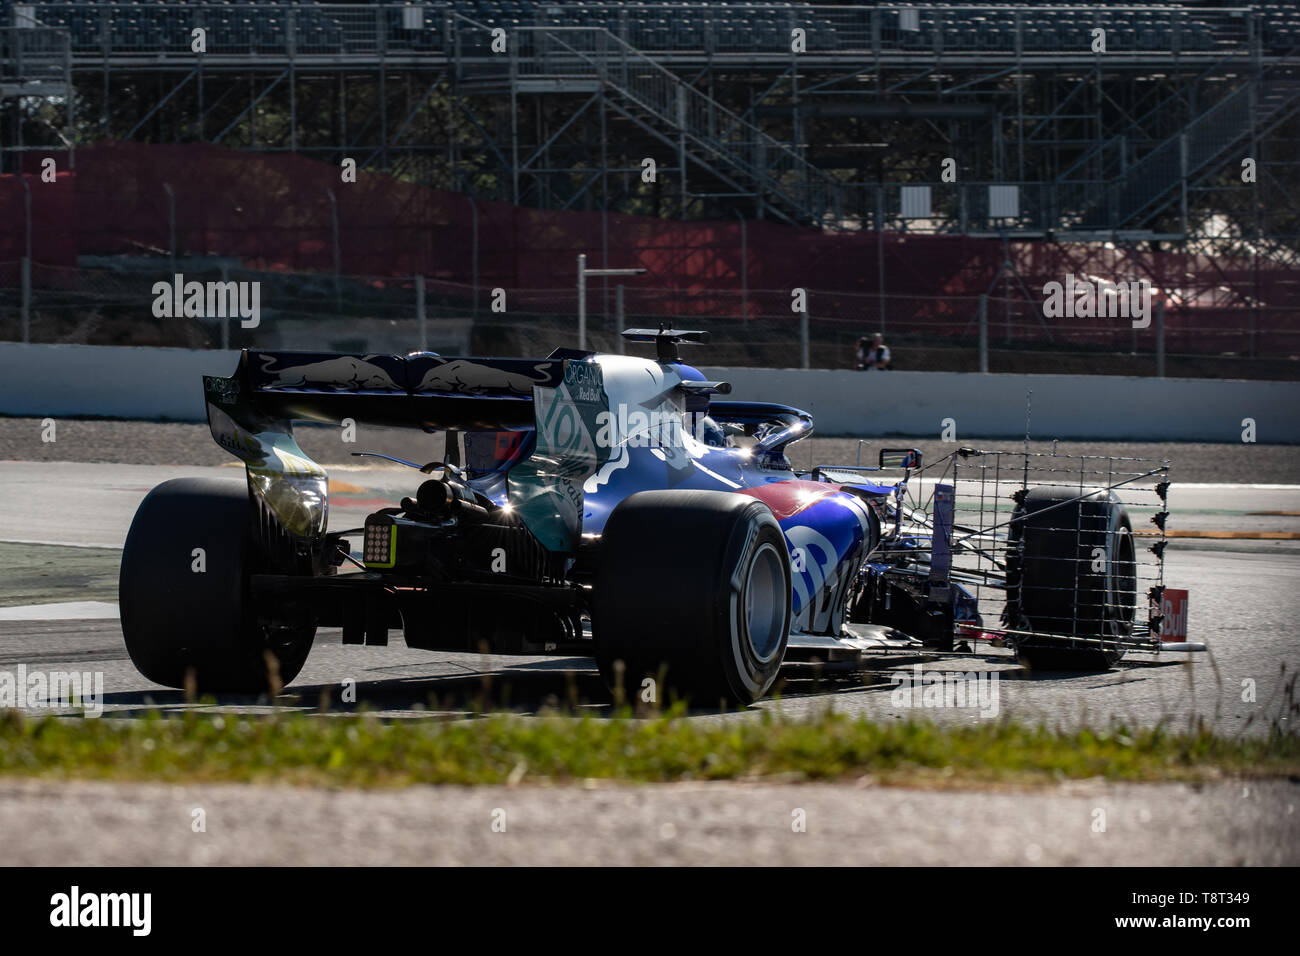 Barcelona, Spain. May, 14th, 2019. Daniil Kvyat of Russia with 26 Scuderia Toro Rosso on track of F1 Test at Circuit de Catalunya. - Stock Image